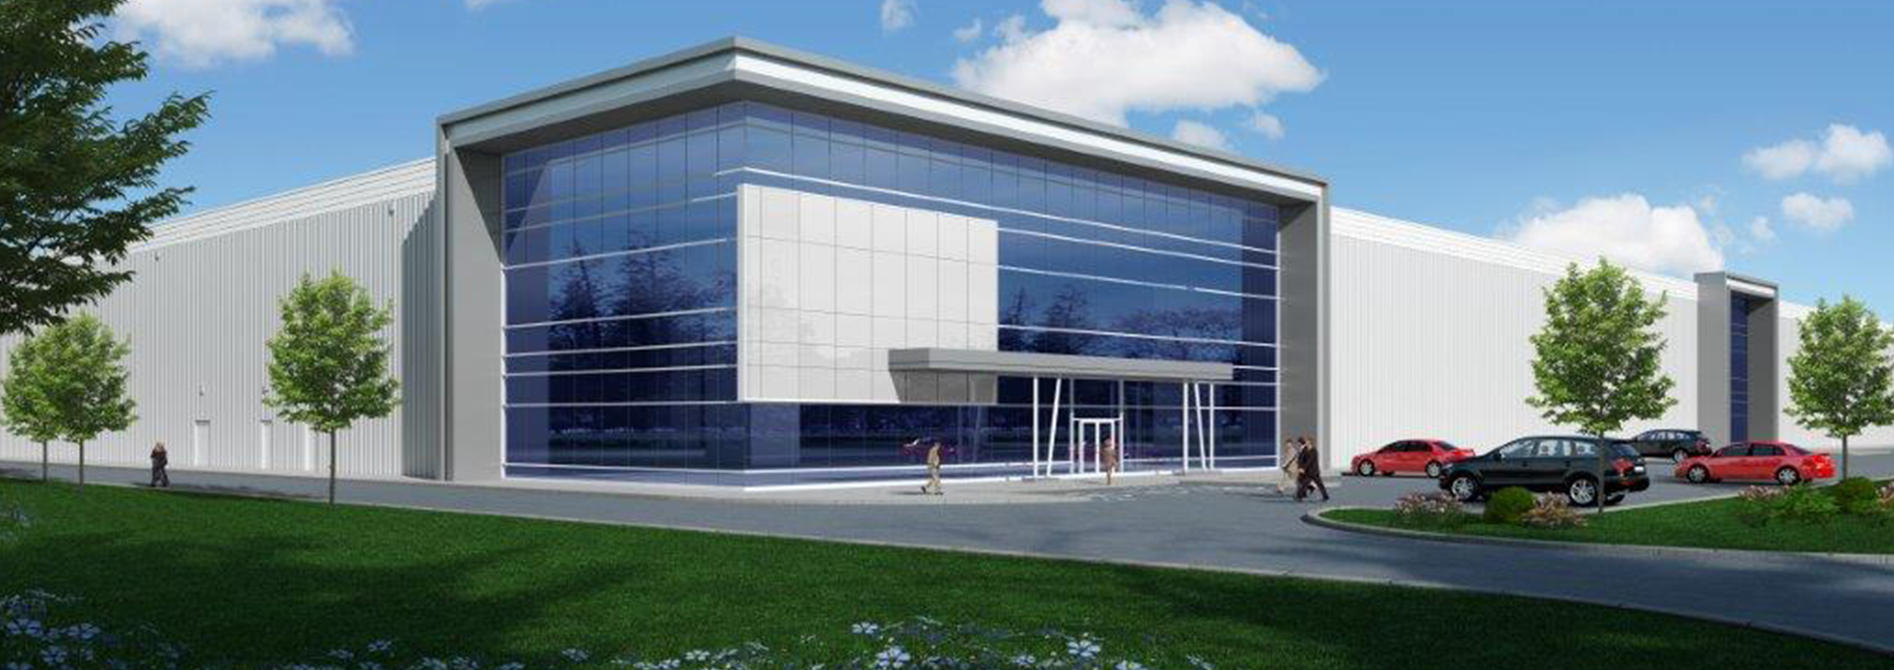 Local Aerospace Giant Expands Facility in Mississauga